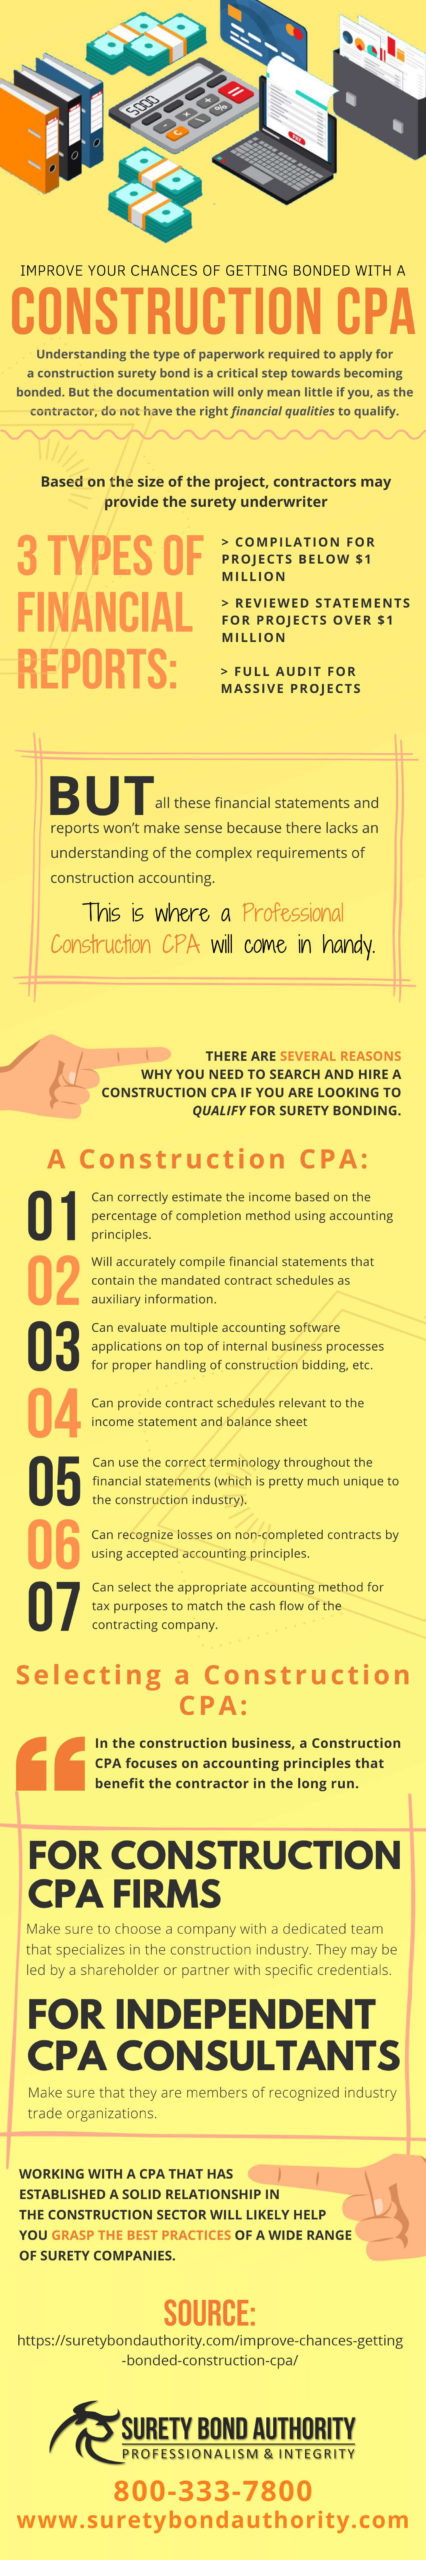 Get Bonded With a Construction CPA